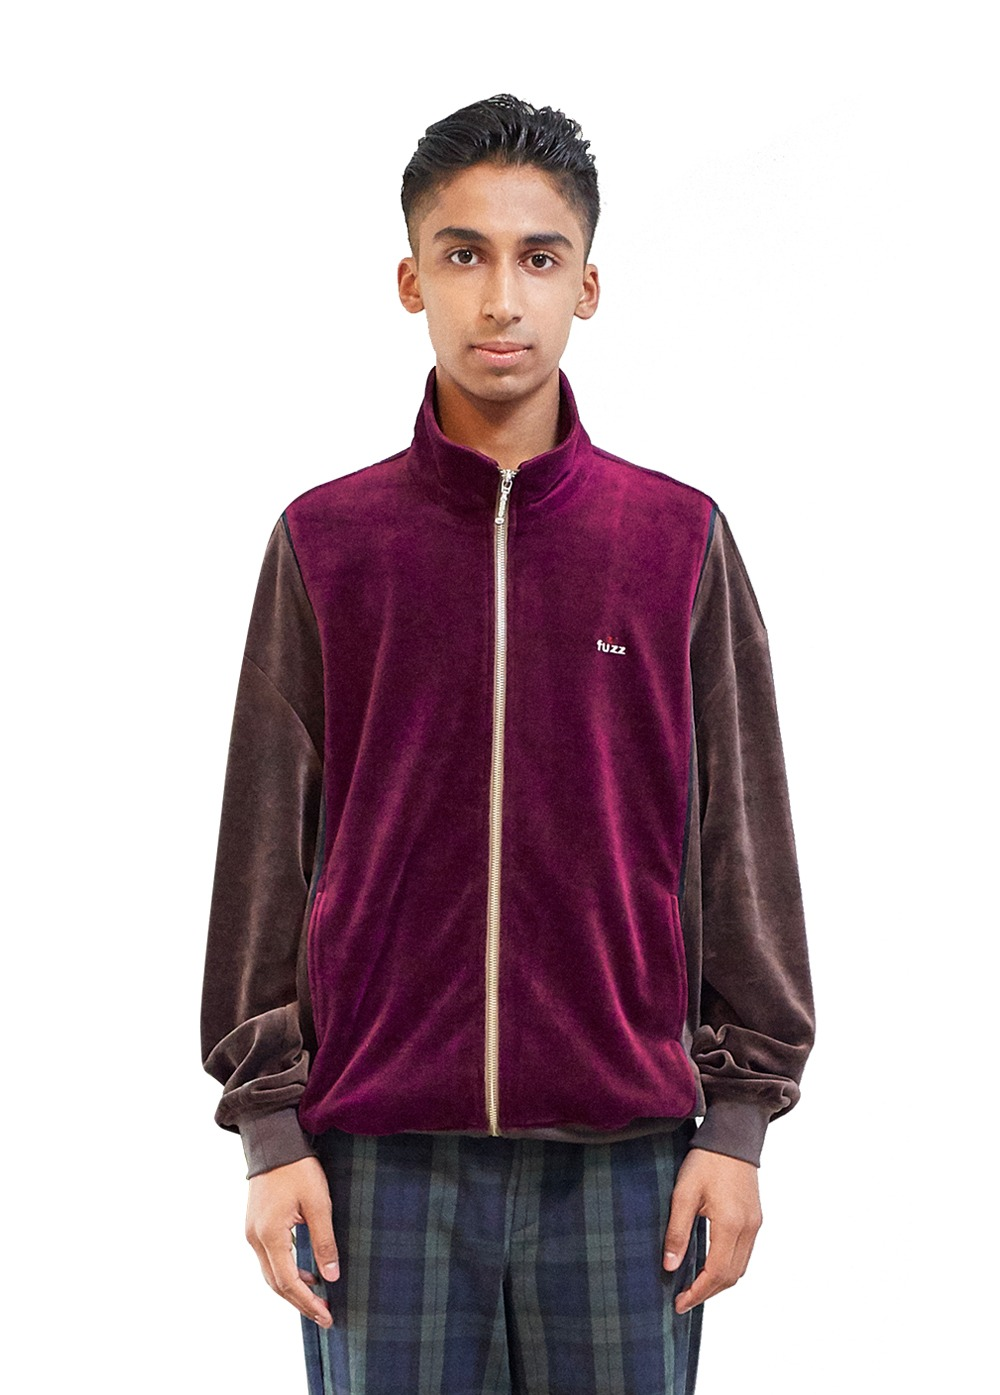 FUZZ SOFT VELOUR JACKET burgundy/brown